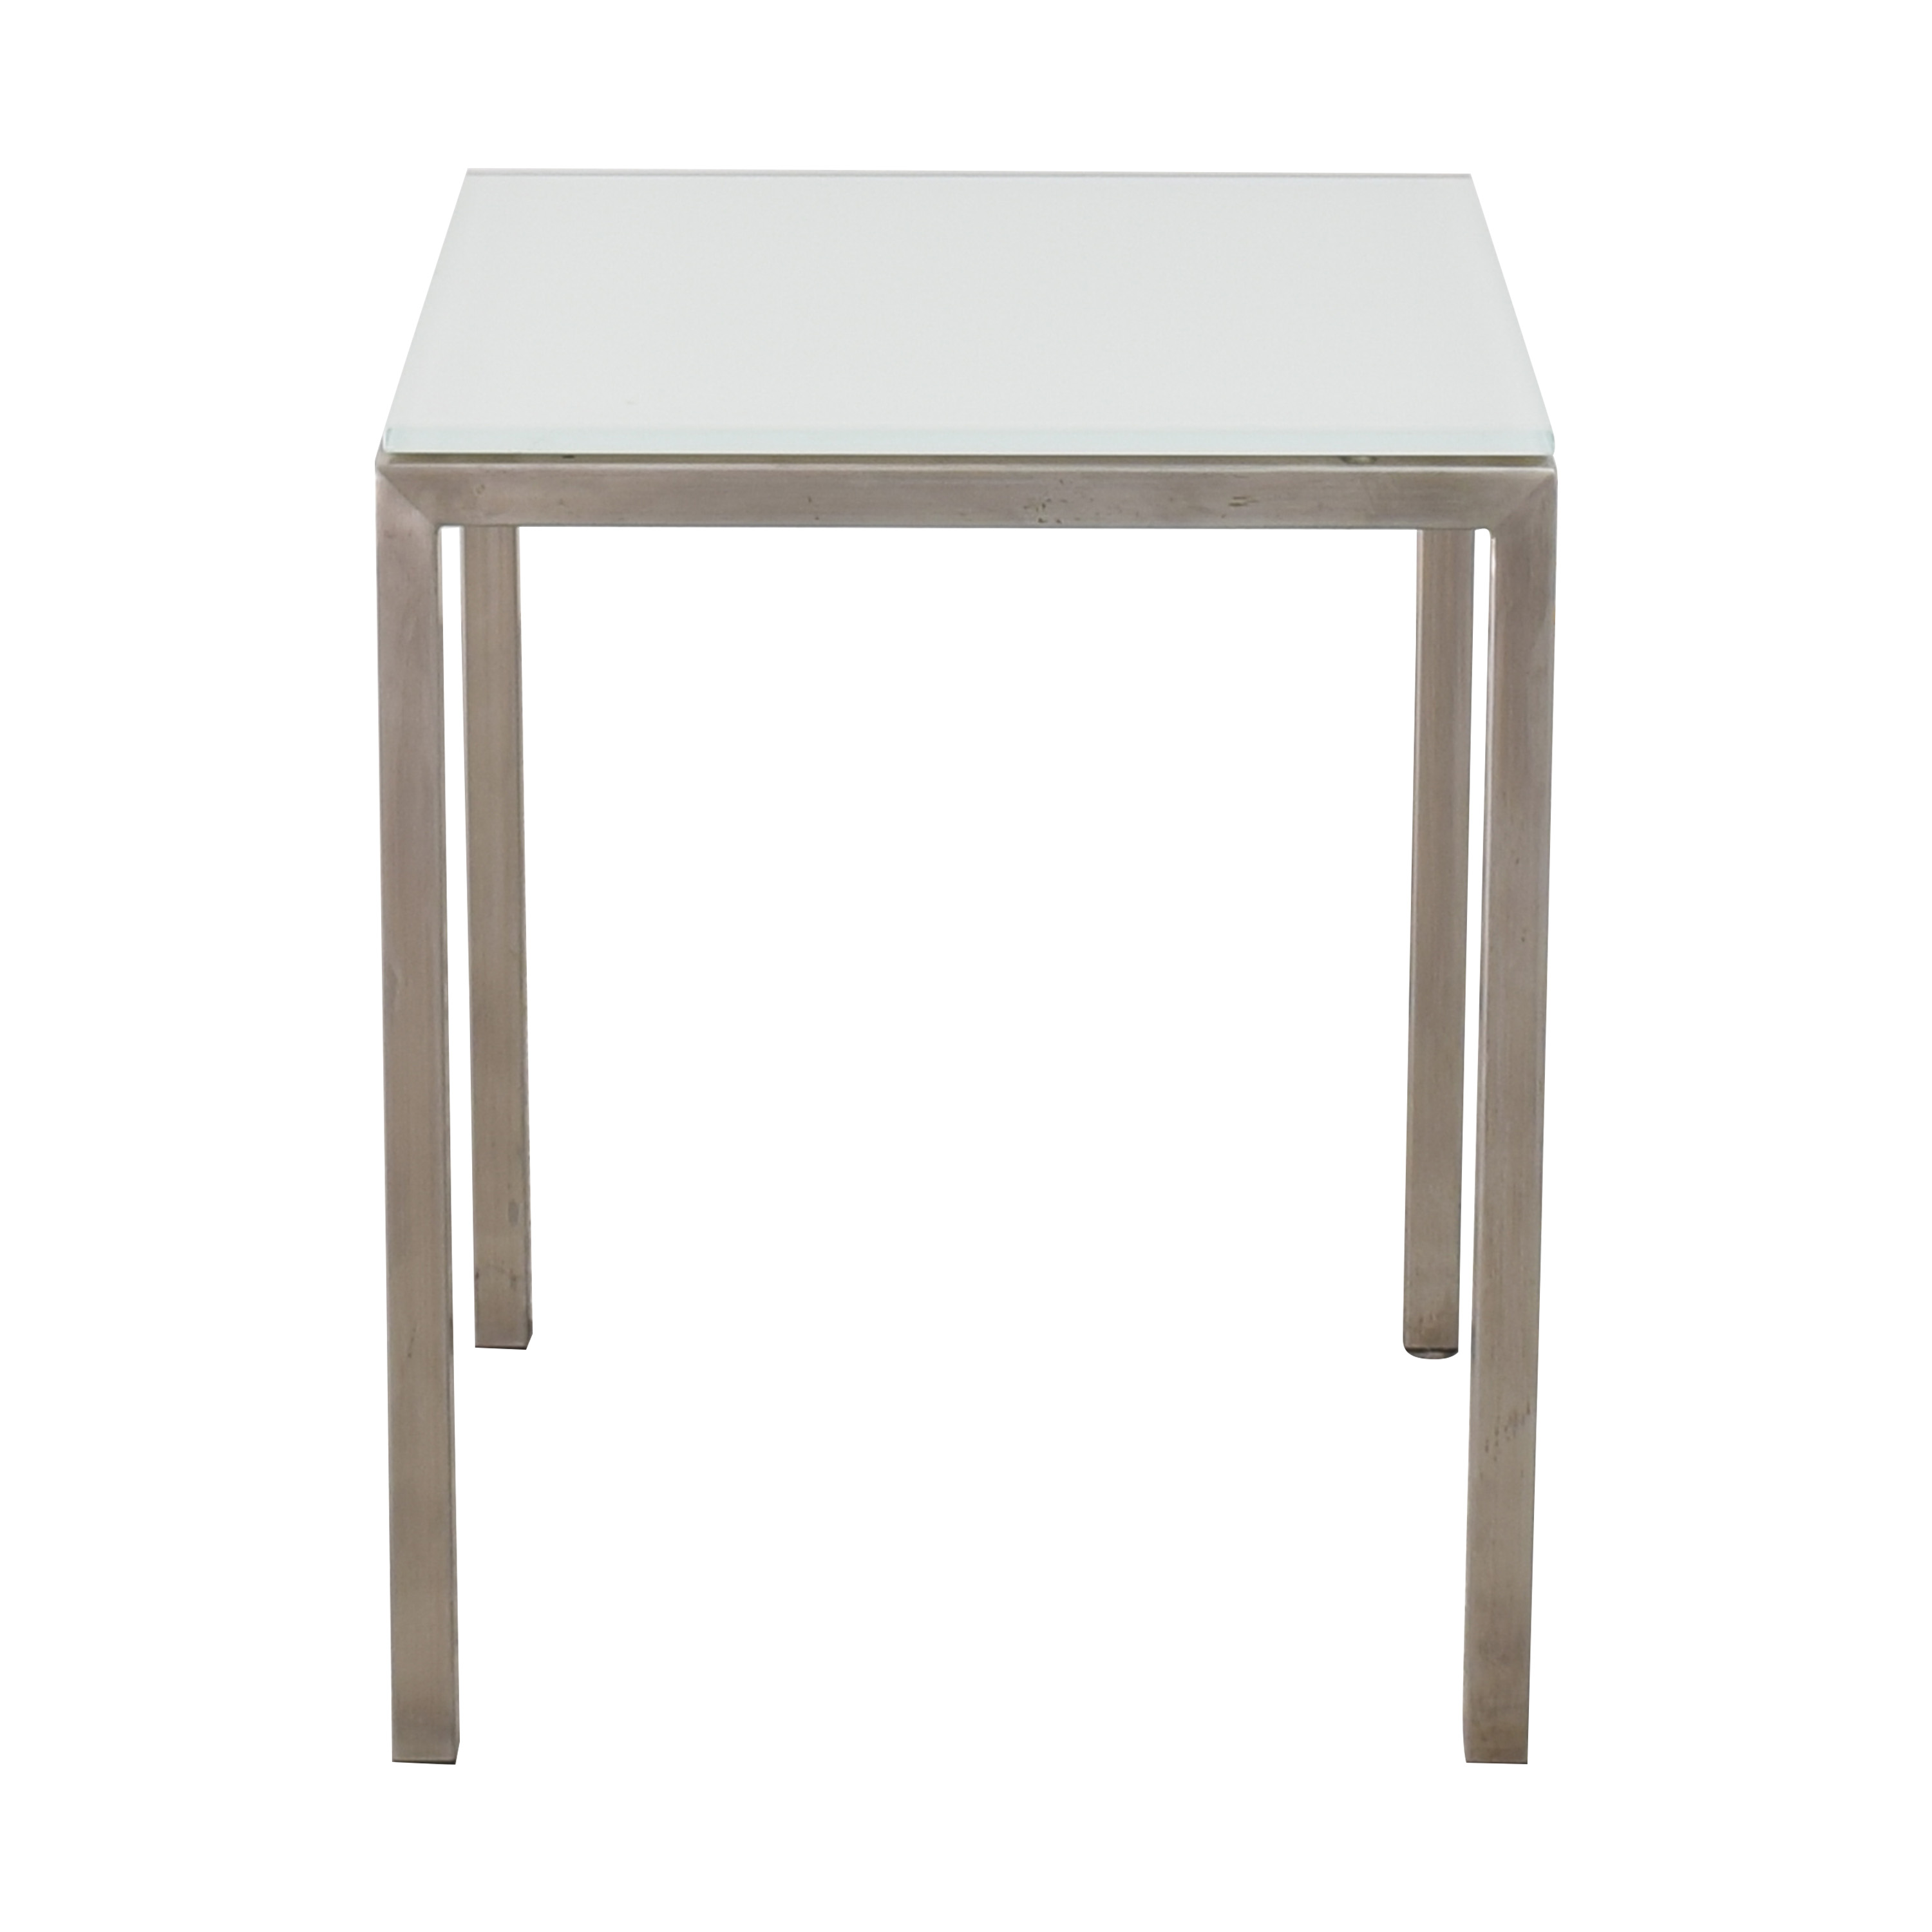 Room & Board Room & Board Portica End Table for sale